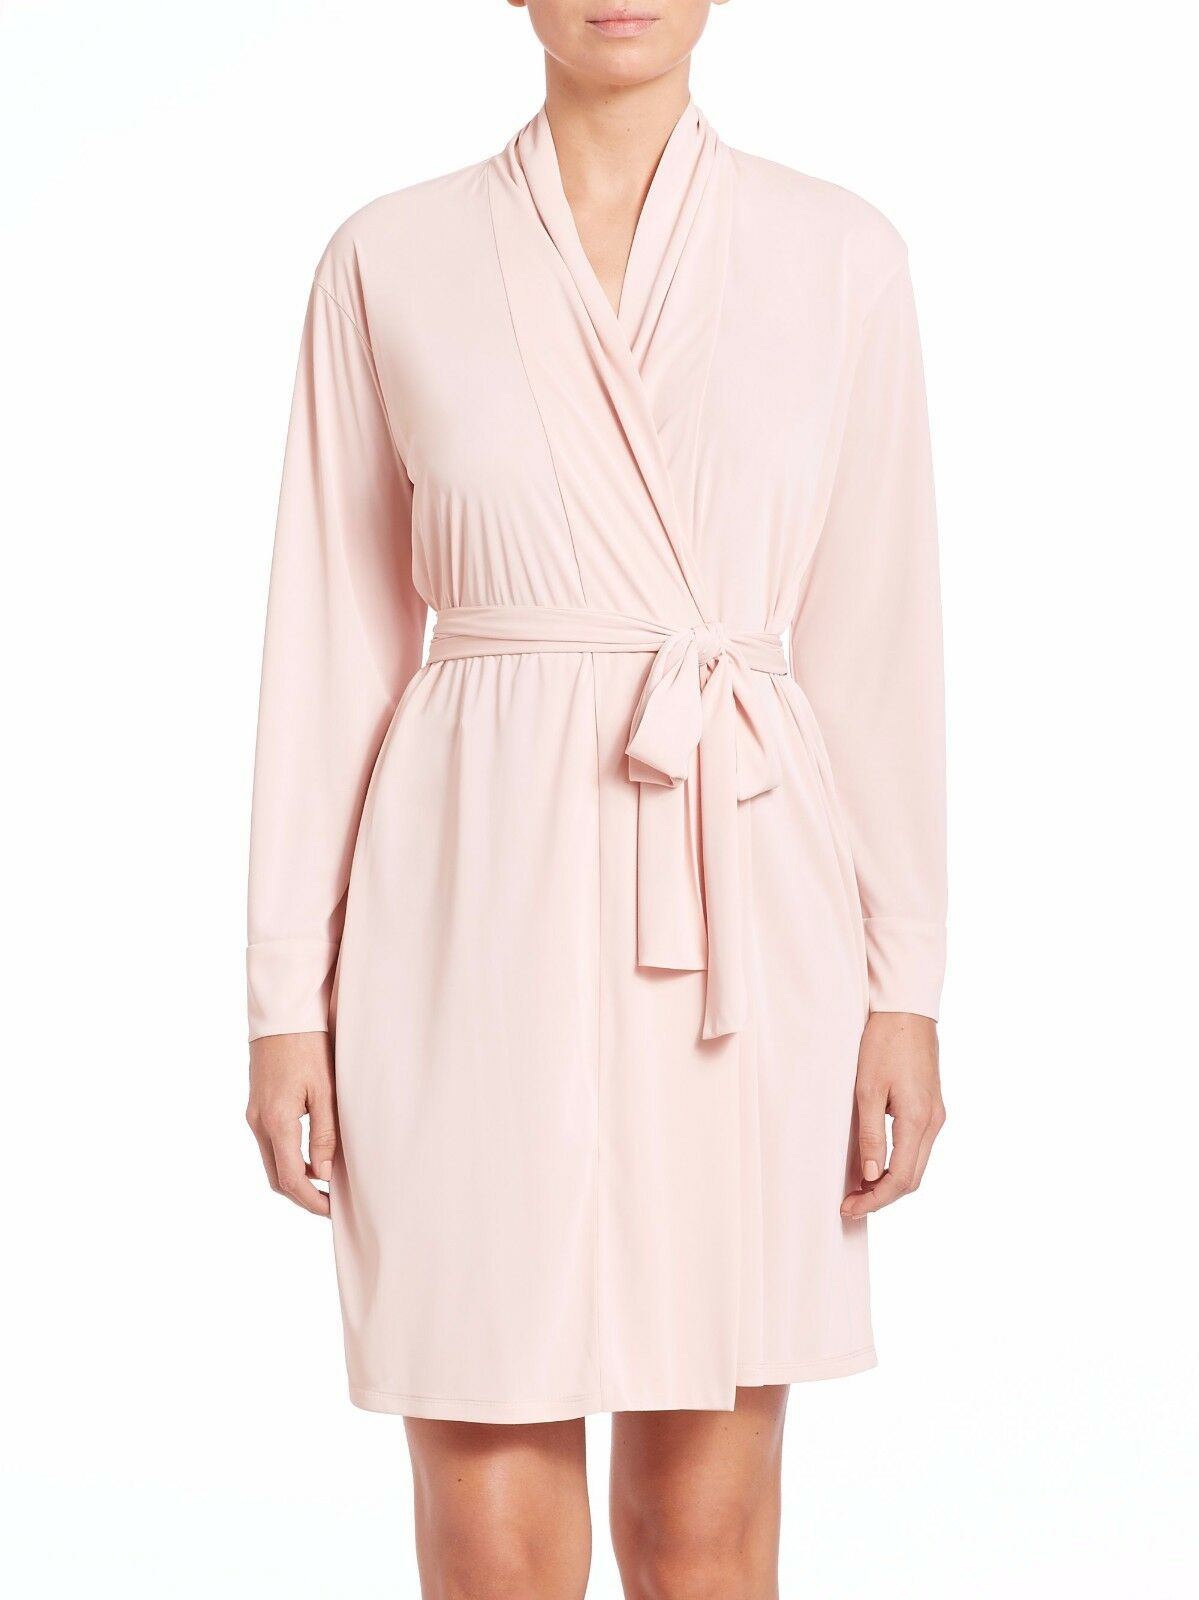 Natori Natori Alamanda Wrap Robe  120 color  Pink Size Medium